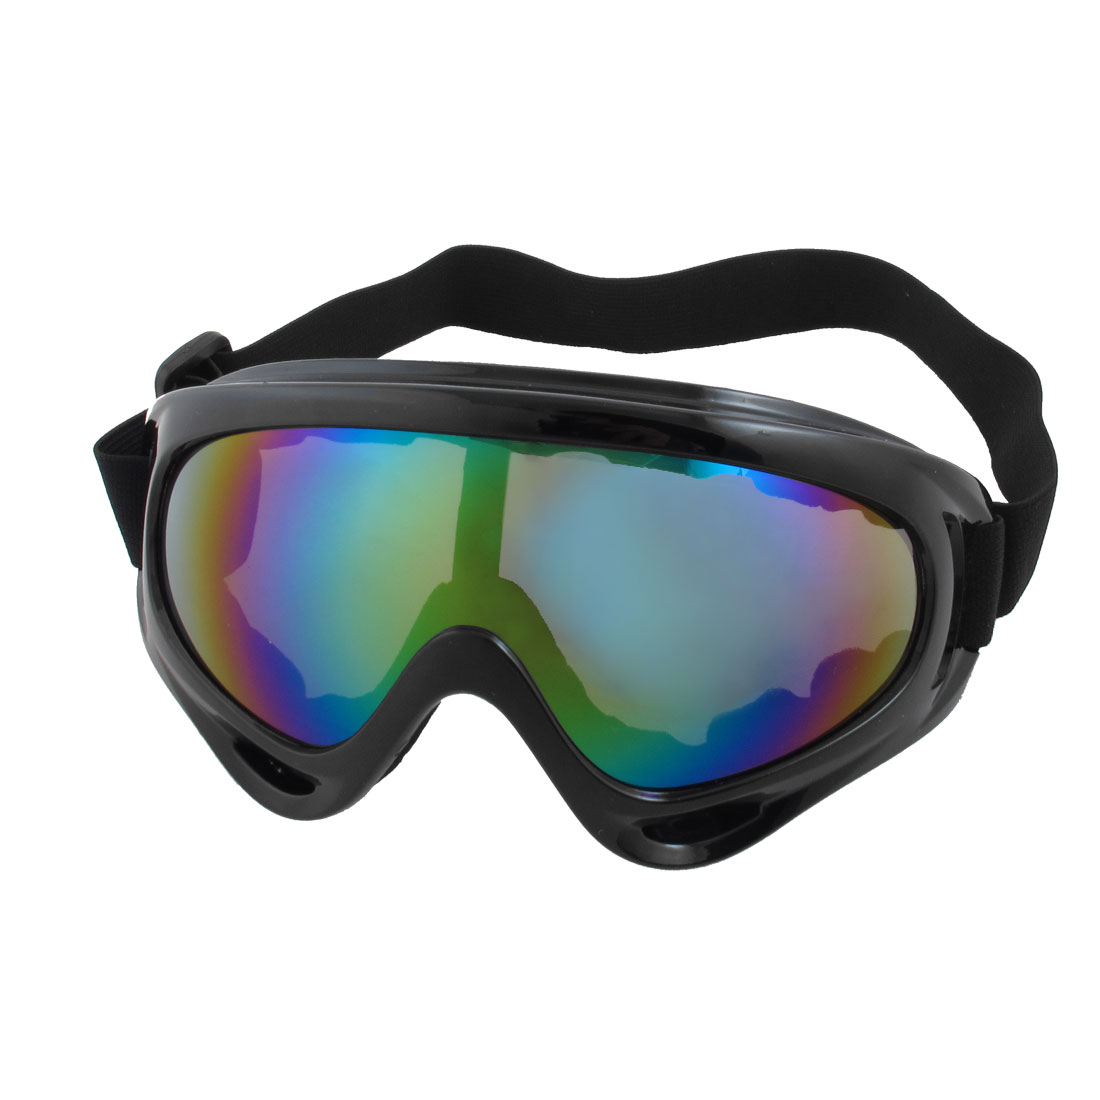 Sport Glasses Safety Goggles Hunting Ski Snowboarding Protection by